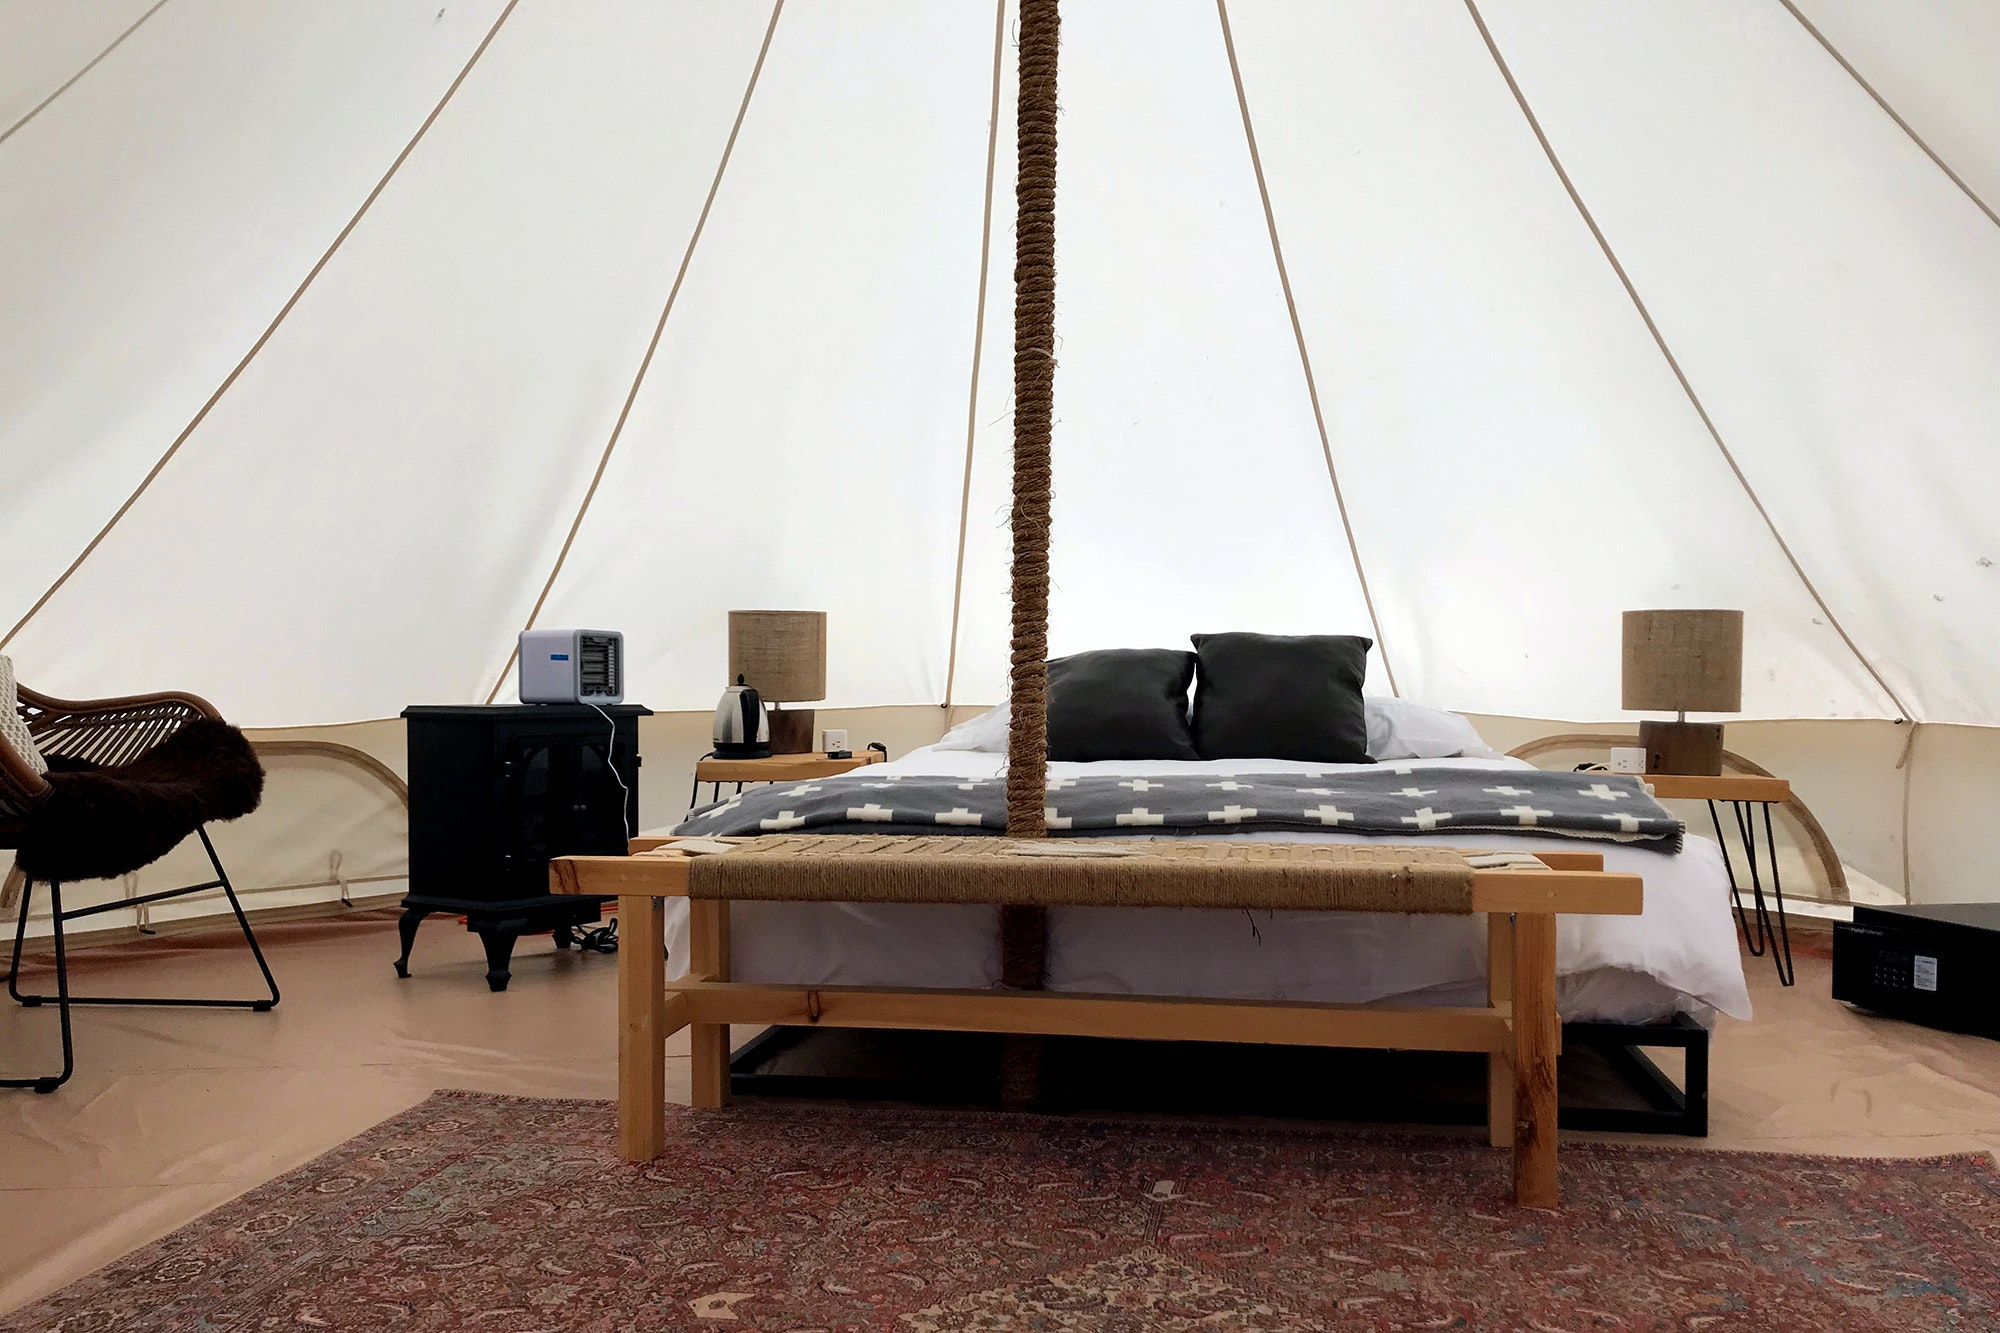 Journey Tents start at $150 per night.